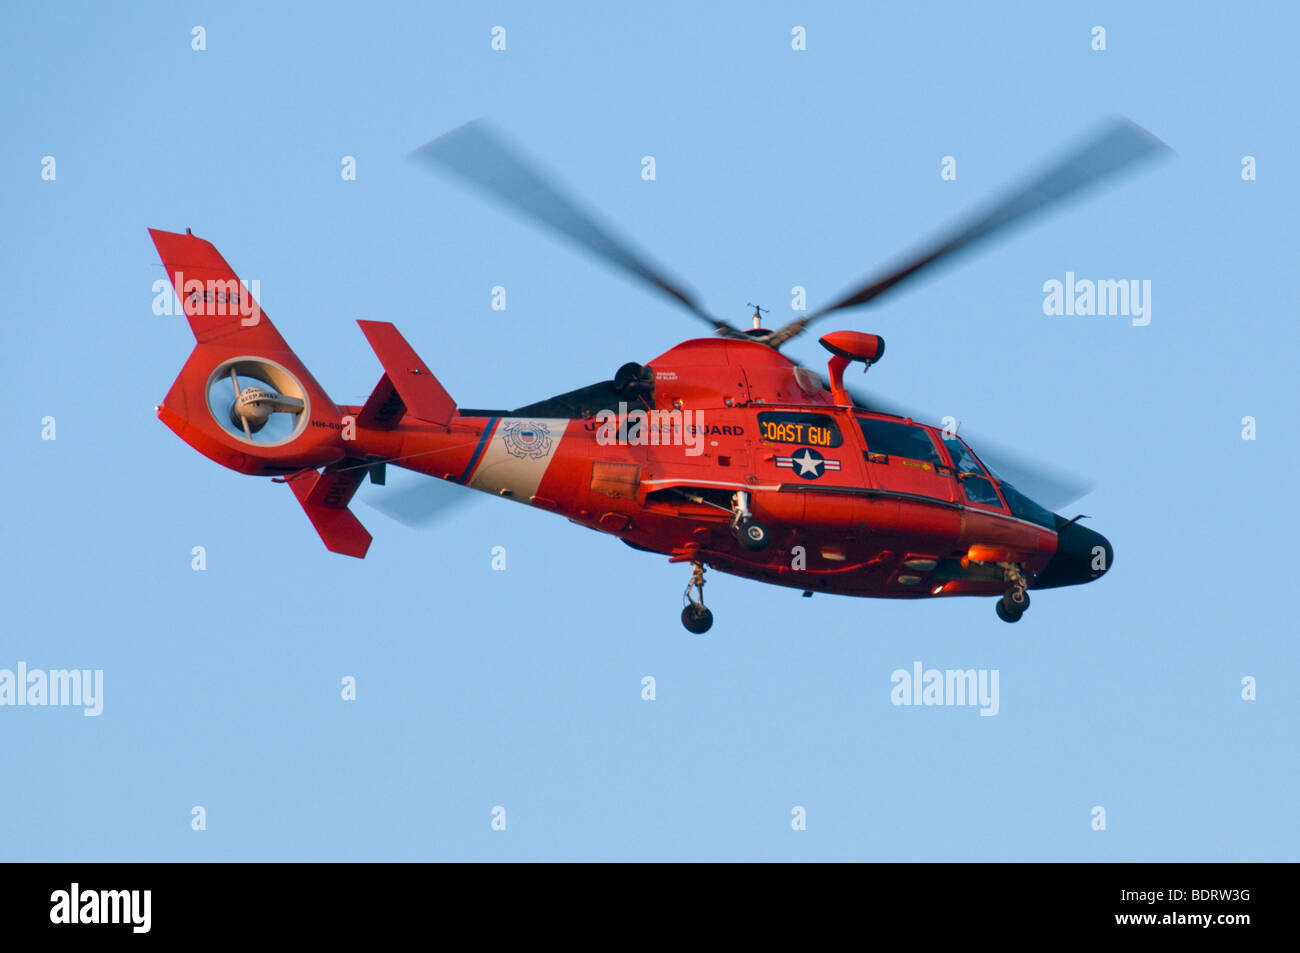 A United States Coast Guard HH-65 Dolphin, MEDEVAC-capable, Search and Rescue (SAR) helicopter. - Stock Image